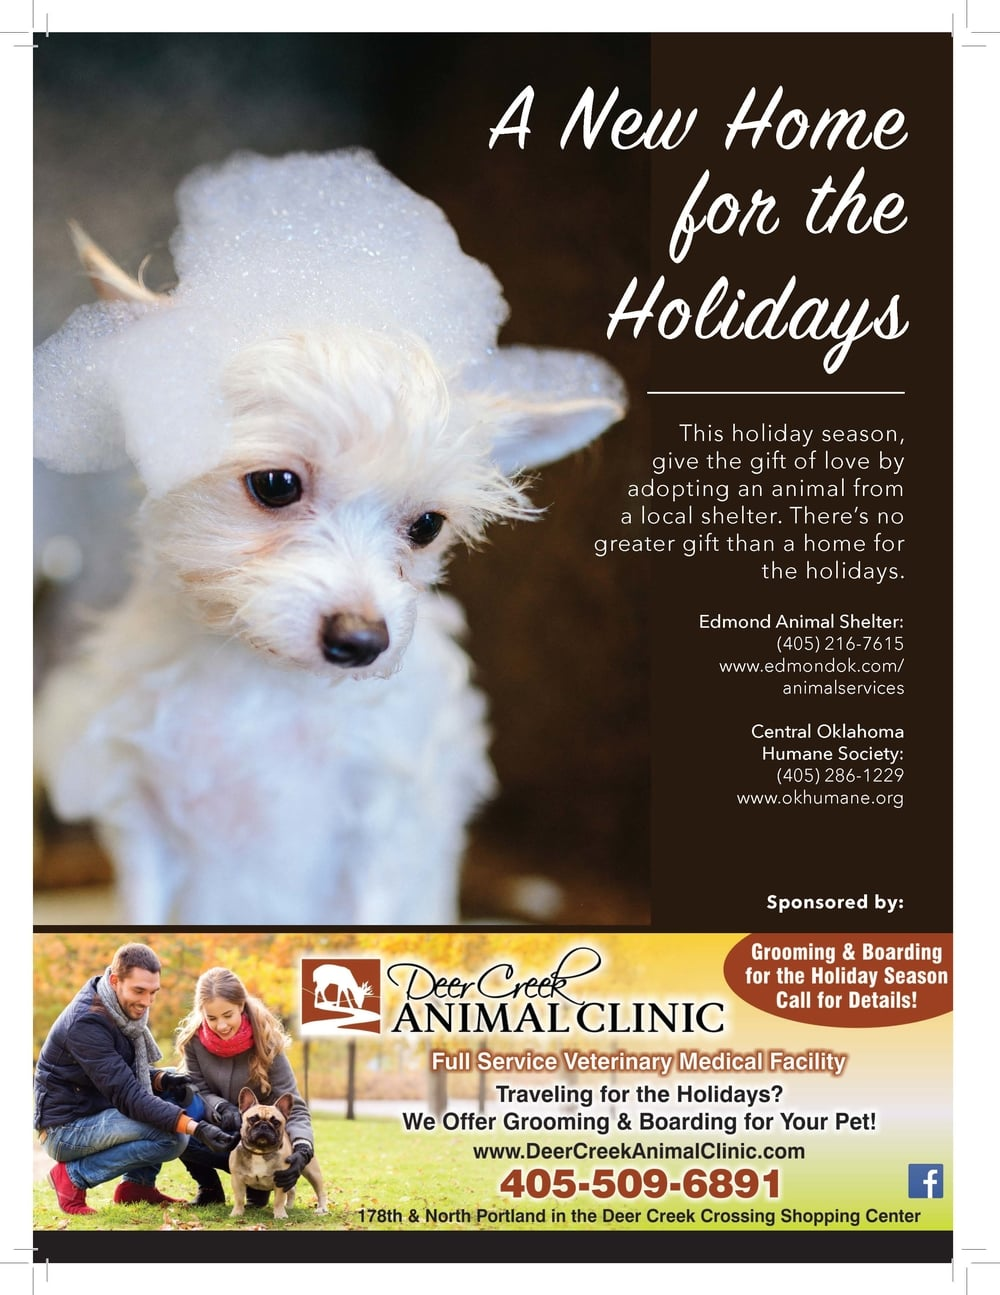 A New Home  This holiday season,  give the gift of love by  adopting an animal from  a local shelter. There's no  greater gift than a home for  the holidays.  for the  Holidays  Edmond Animal Shelter:  (405) 216-7615  www.edmondok.com/  animalservices  Central Oklahoma  Humane Society:  (405) 286-1229  www.okhumane.org